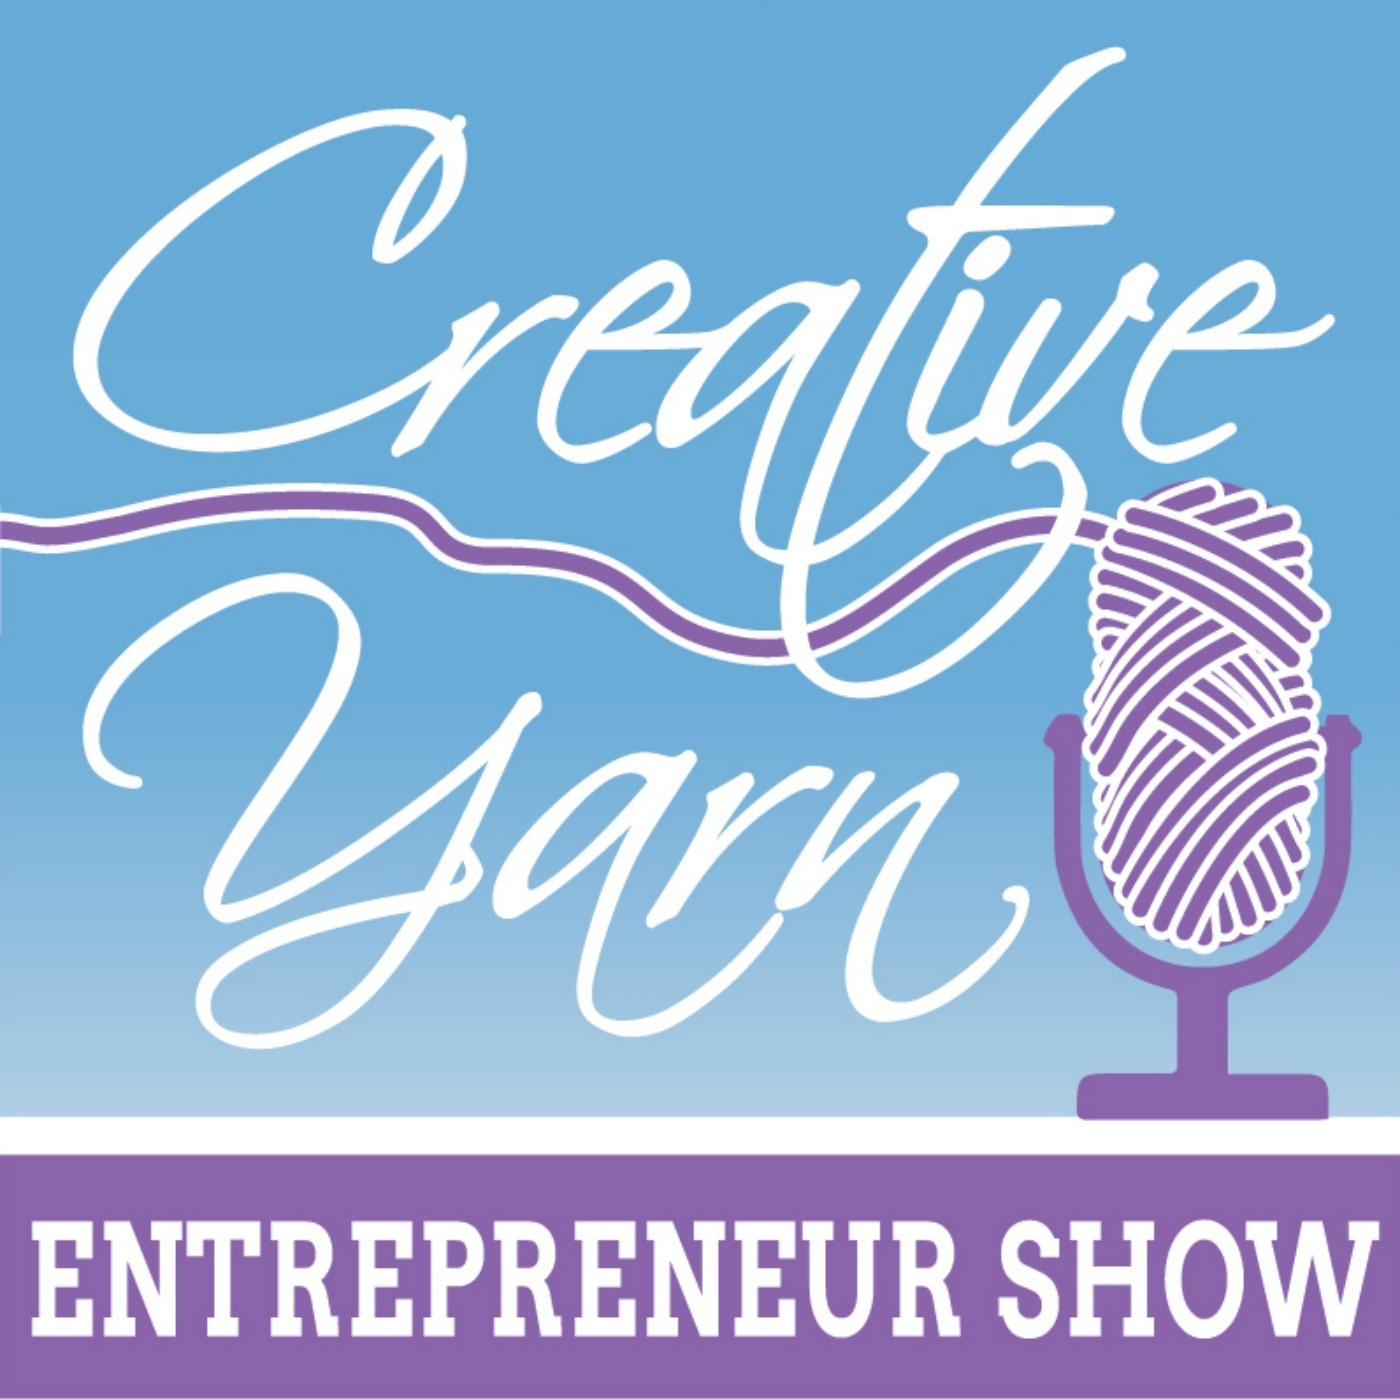 Episode 66: Showcasing Your Creative Business and Pitching to Brands and Clients with Leslie Albertson from Mixbook